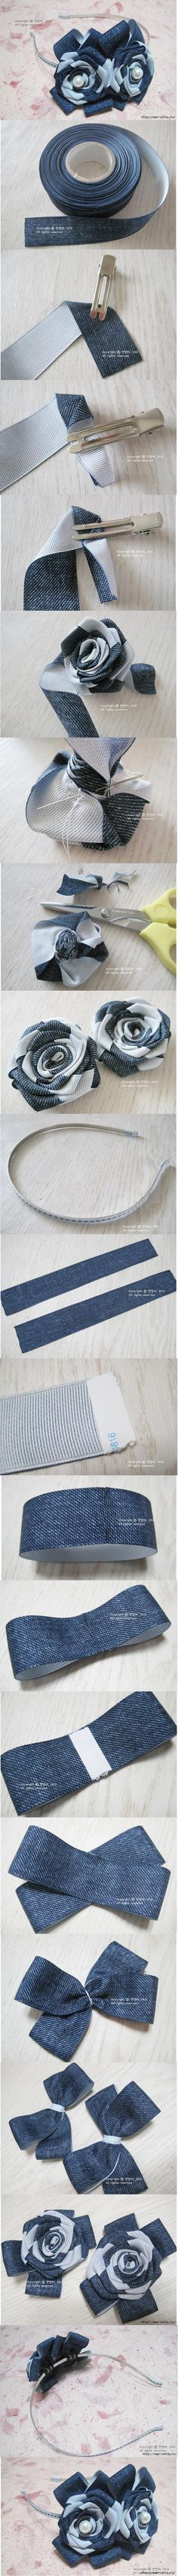 DIY Herringbone Ribbon Roses DIY Projects | UsefulDIY.com Follow Us on Facebook --> https://www.facebook.com/UsefulDiy